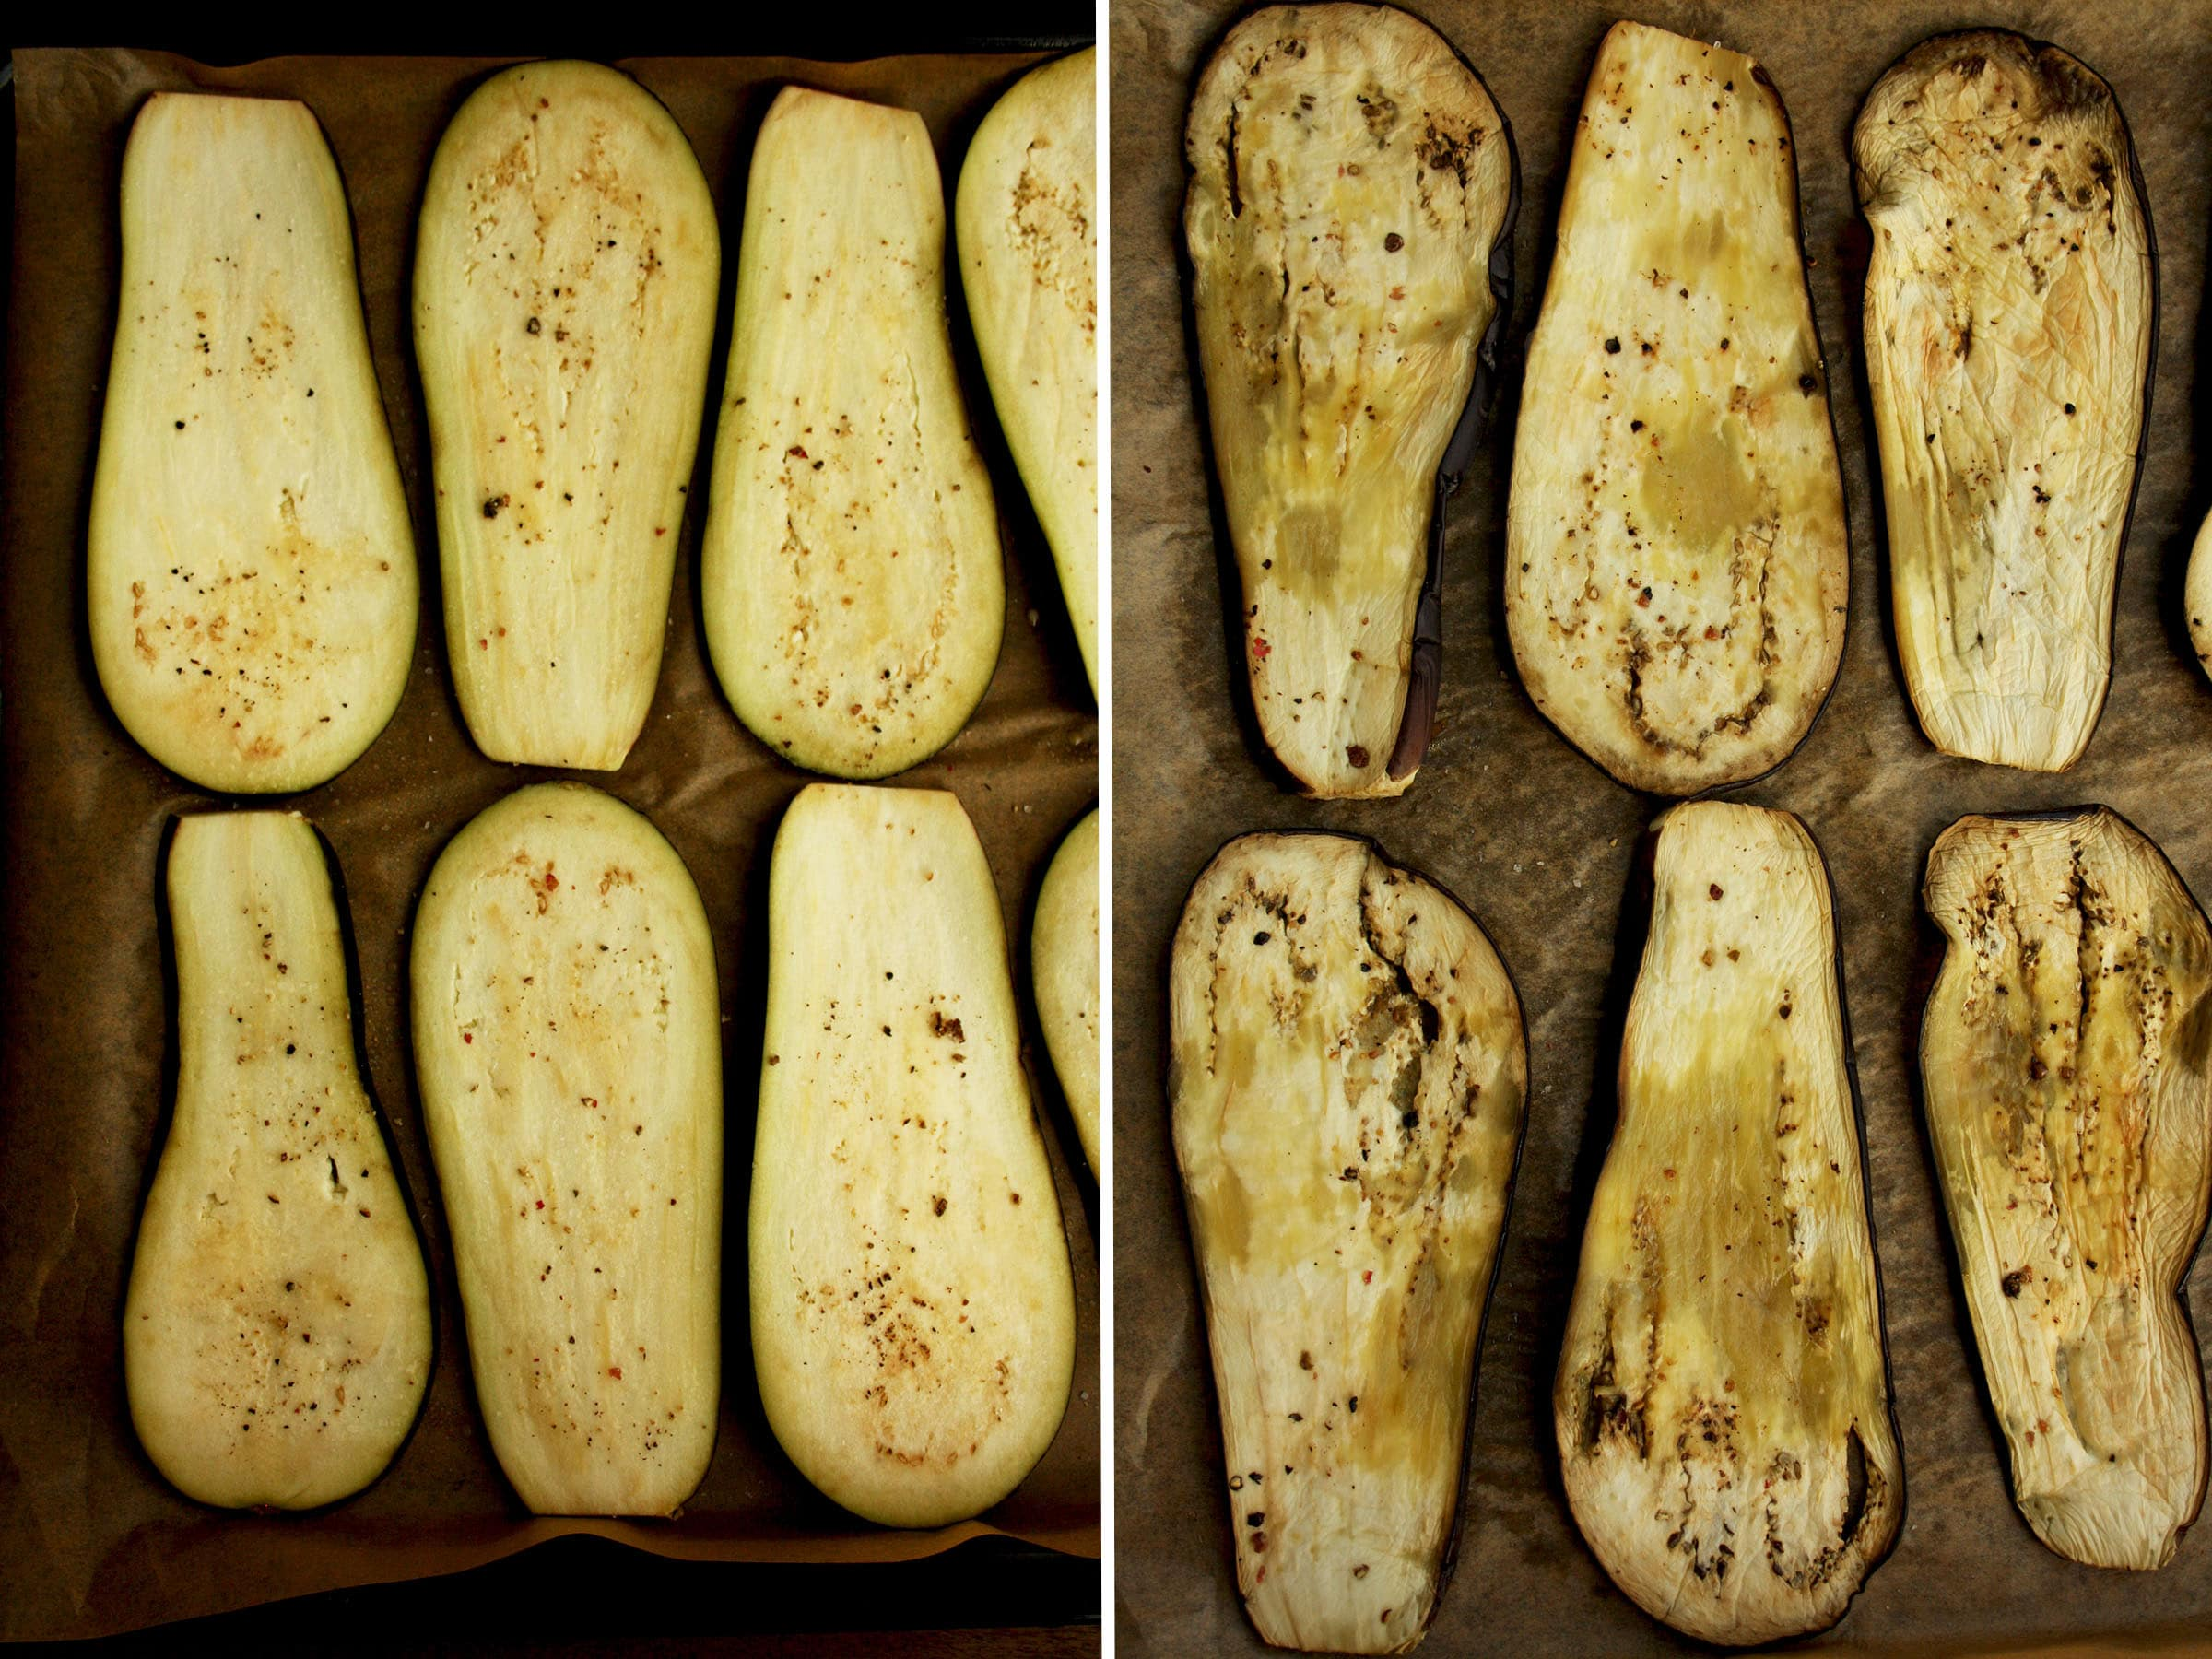 Process Shot of Baking Eggplants in the Oven.